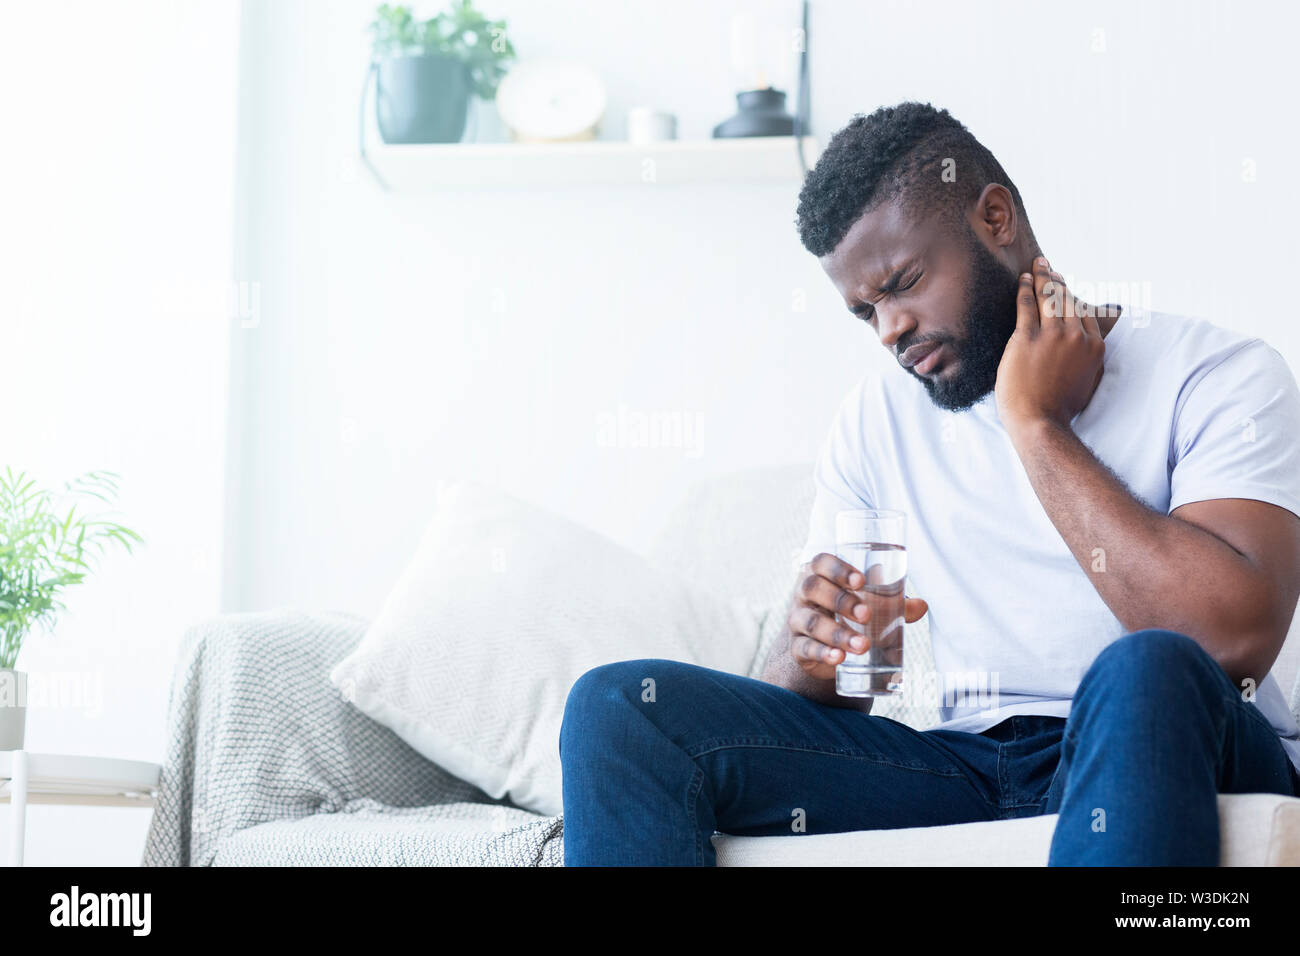 African american man suffering from neck pain at home - Stock Image